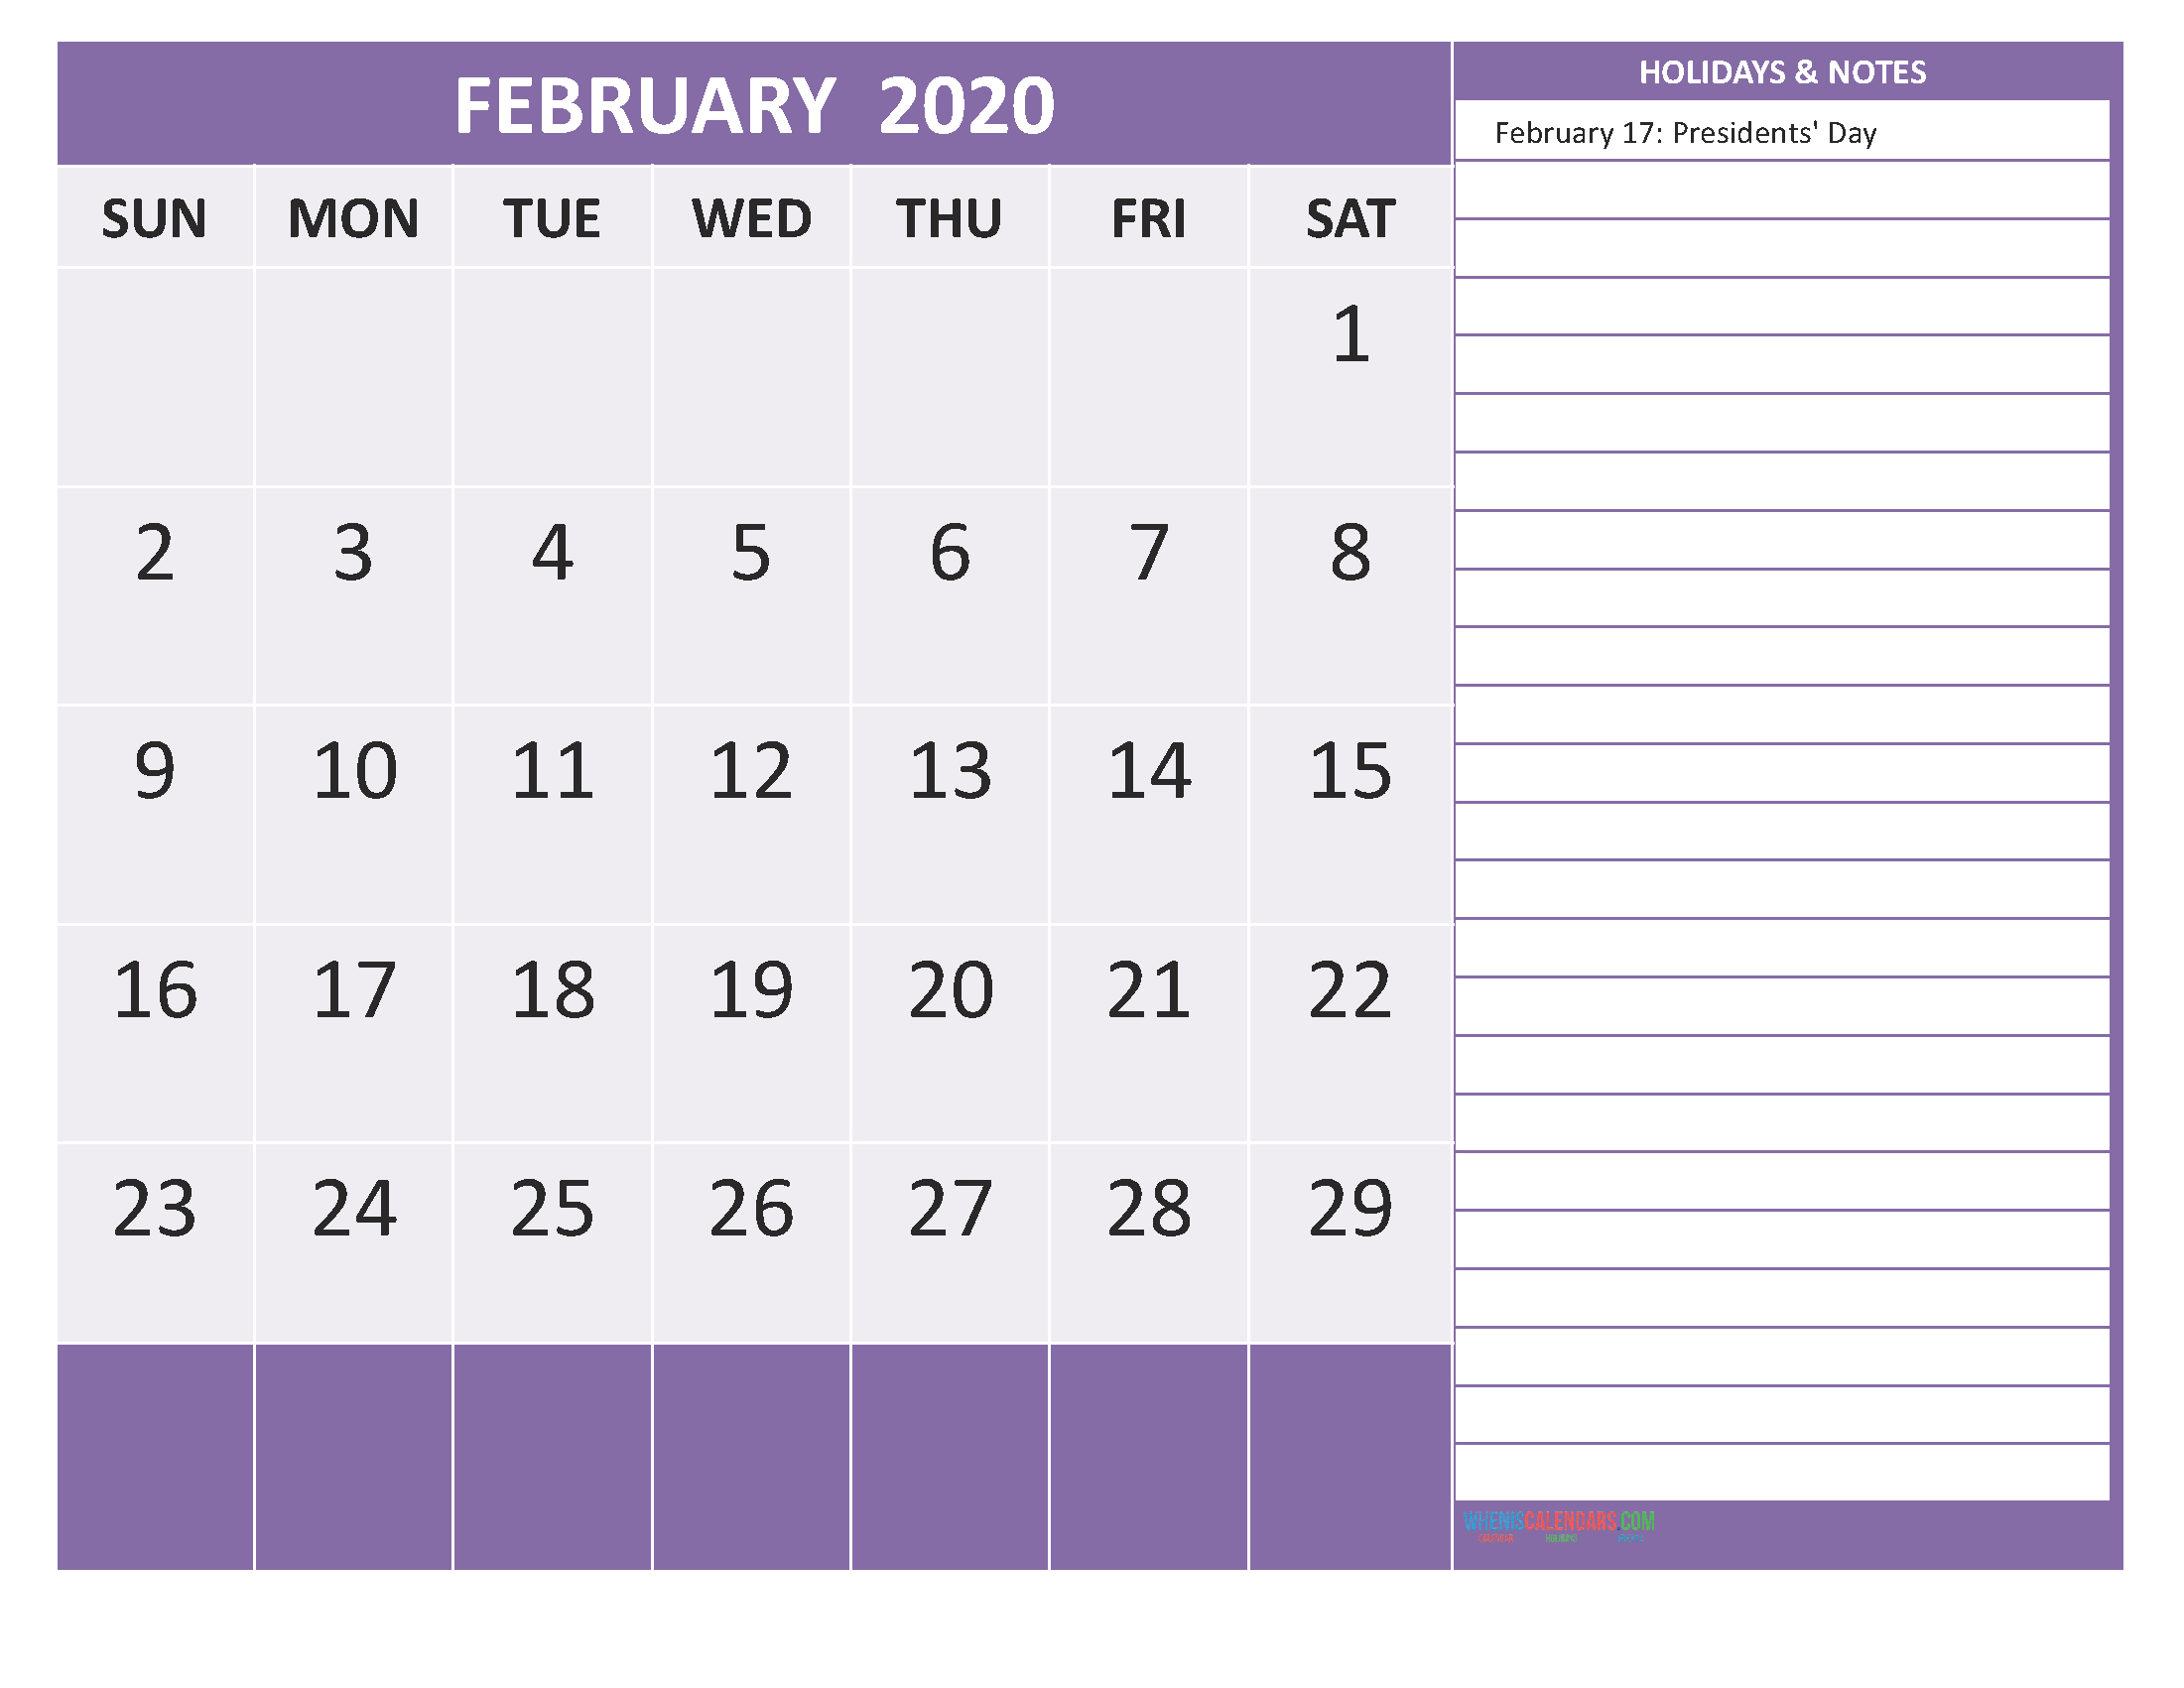 Calendar 2020 Holidays - February 2020 Calendar With